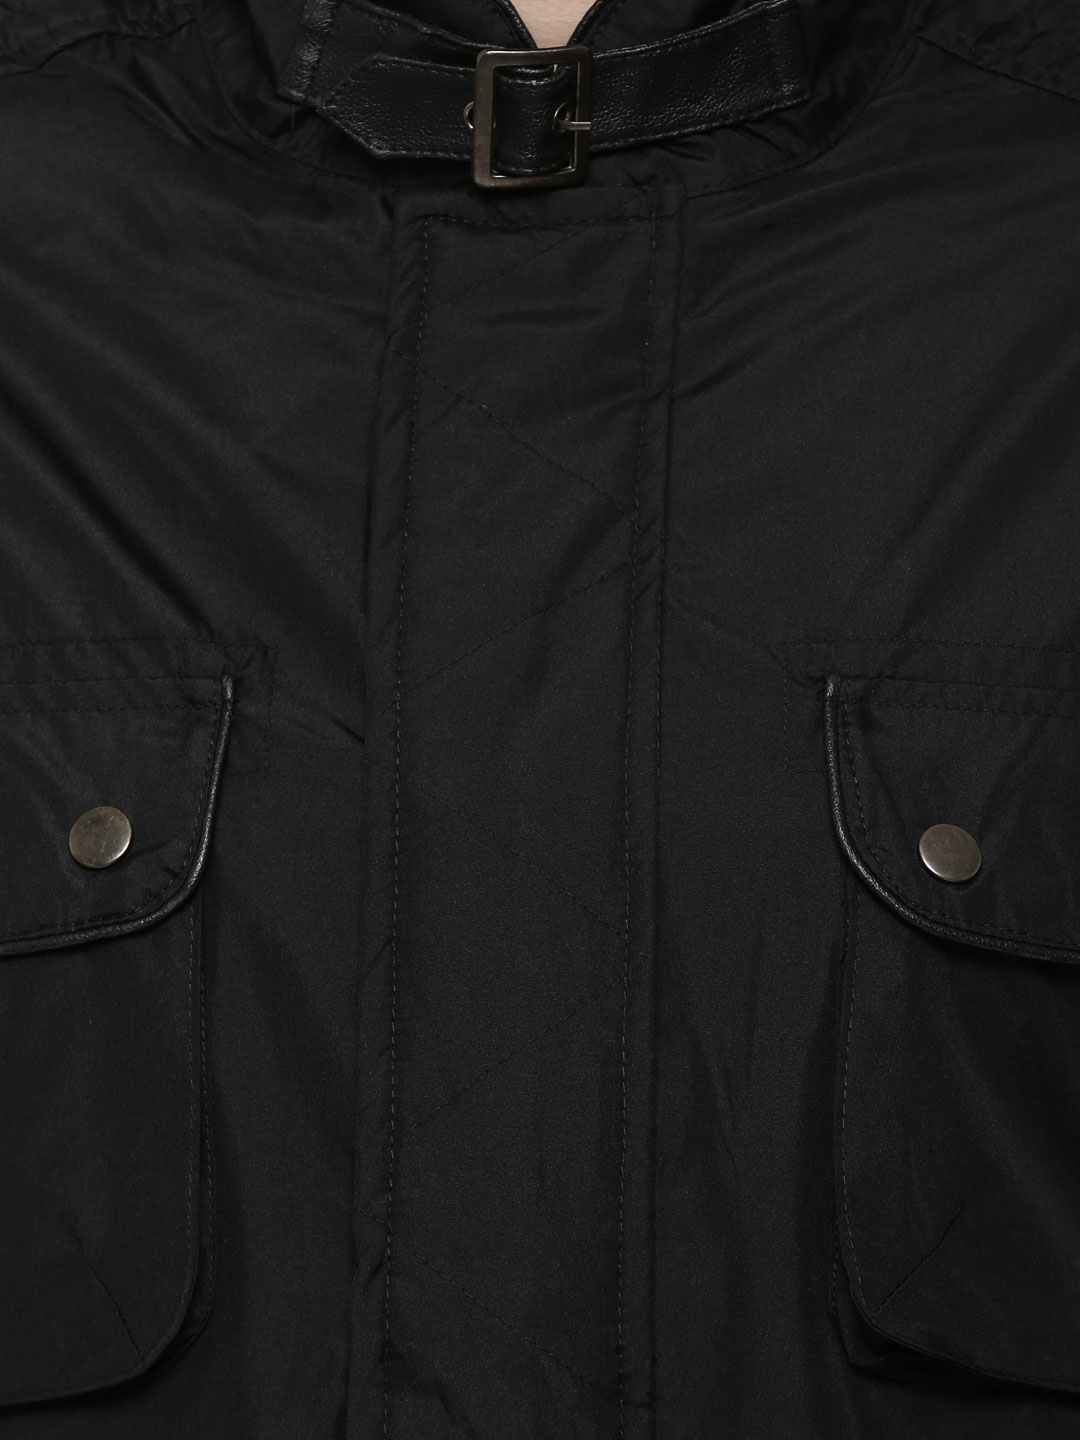 It is a graphic of Old Fashioned Brave Soul Black Label Wool Coat